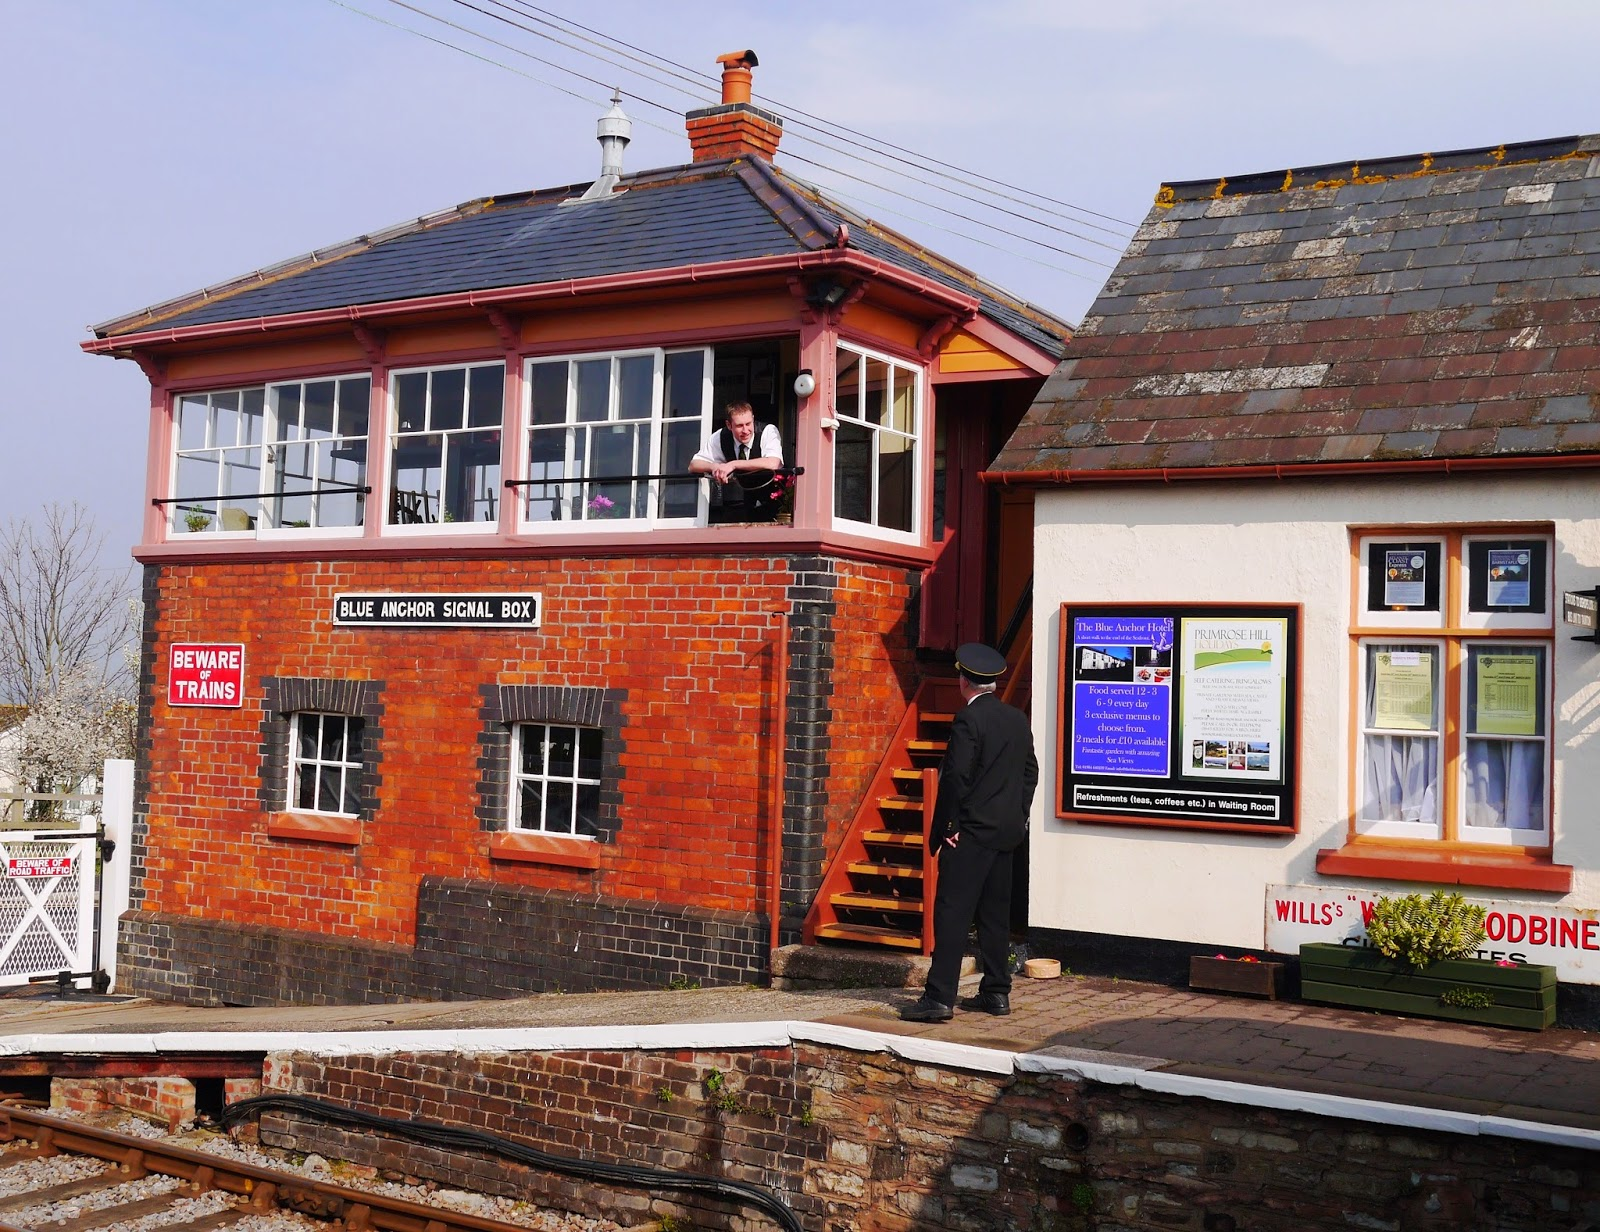 Blue Anchor Signalbox